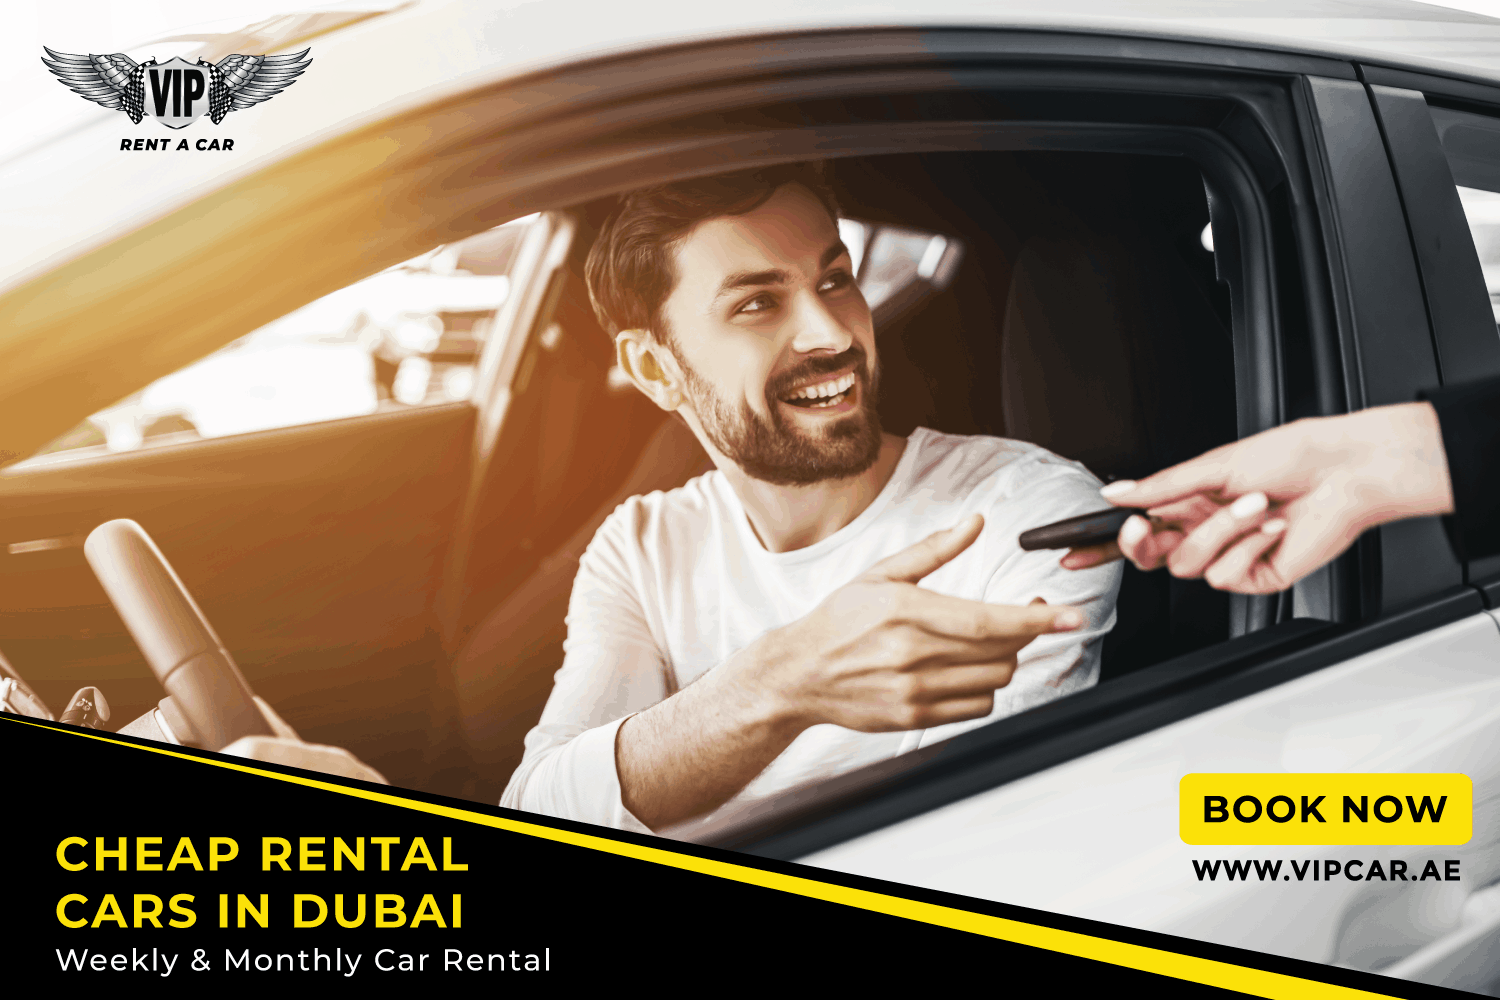 Rent a Car Dubai: Short-term & Long-term Car Rentals